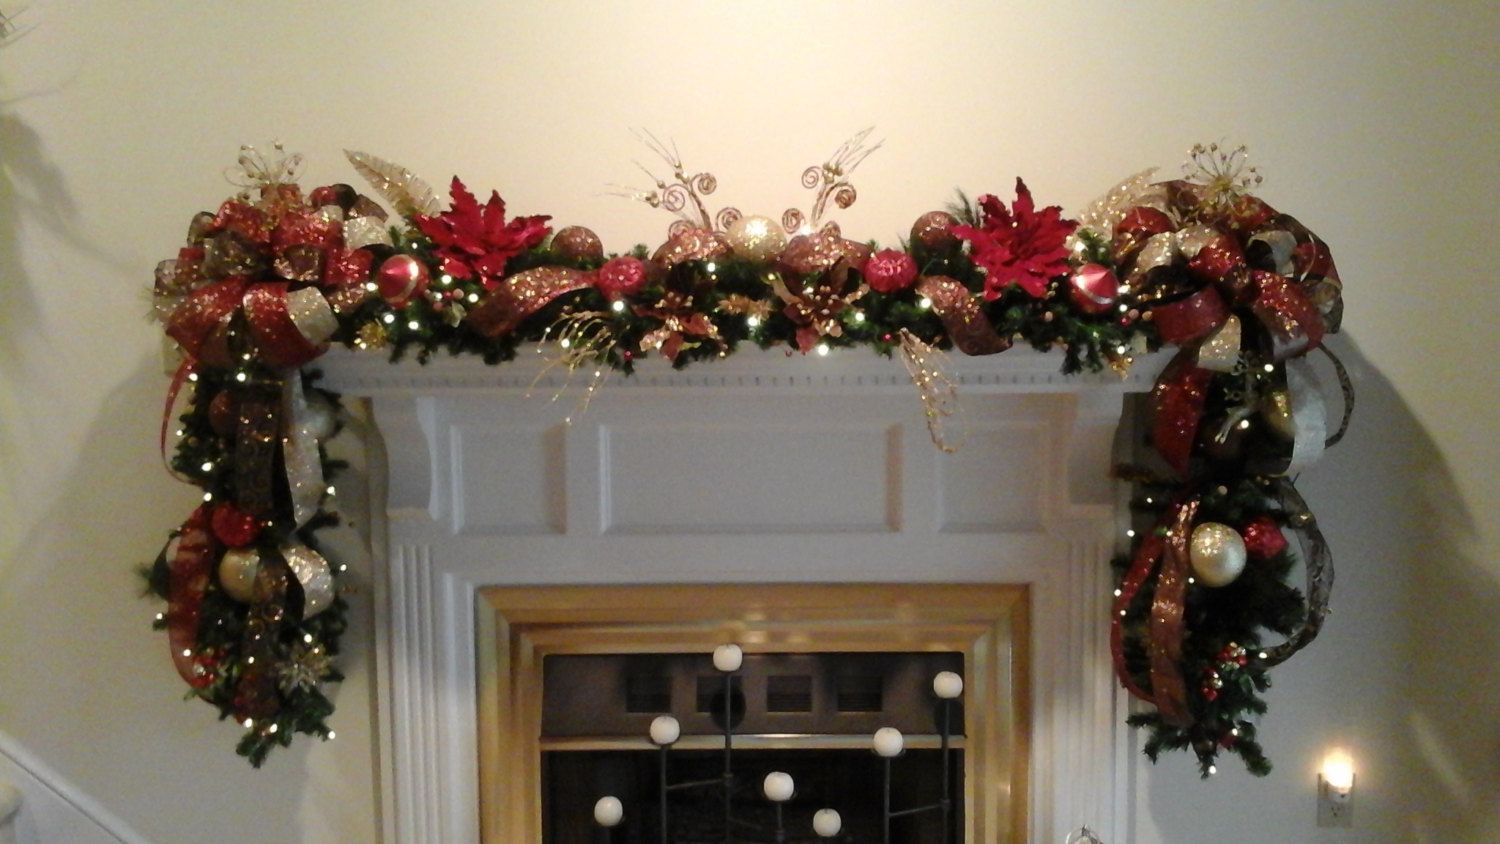 Christmas Fireplace Mantel Lighted Garland Xl Deluxe Luxury Fl Poinsettia Swag Bethlehem Battery Operated Lights Shipping Included By